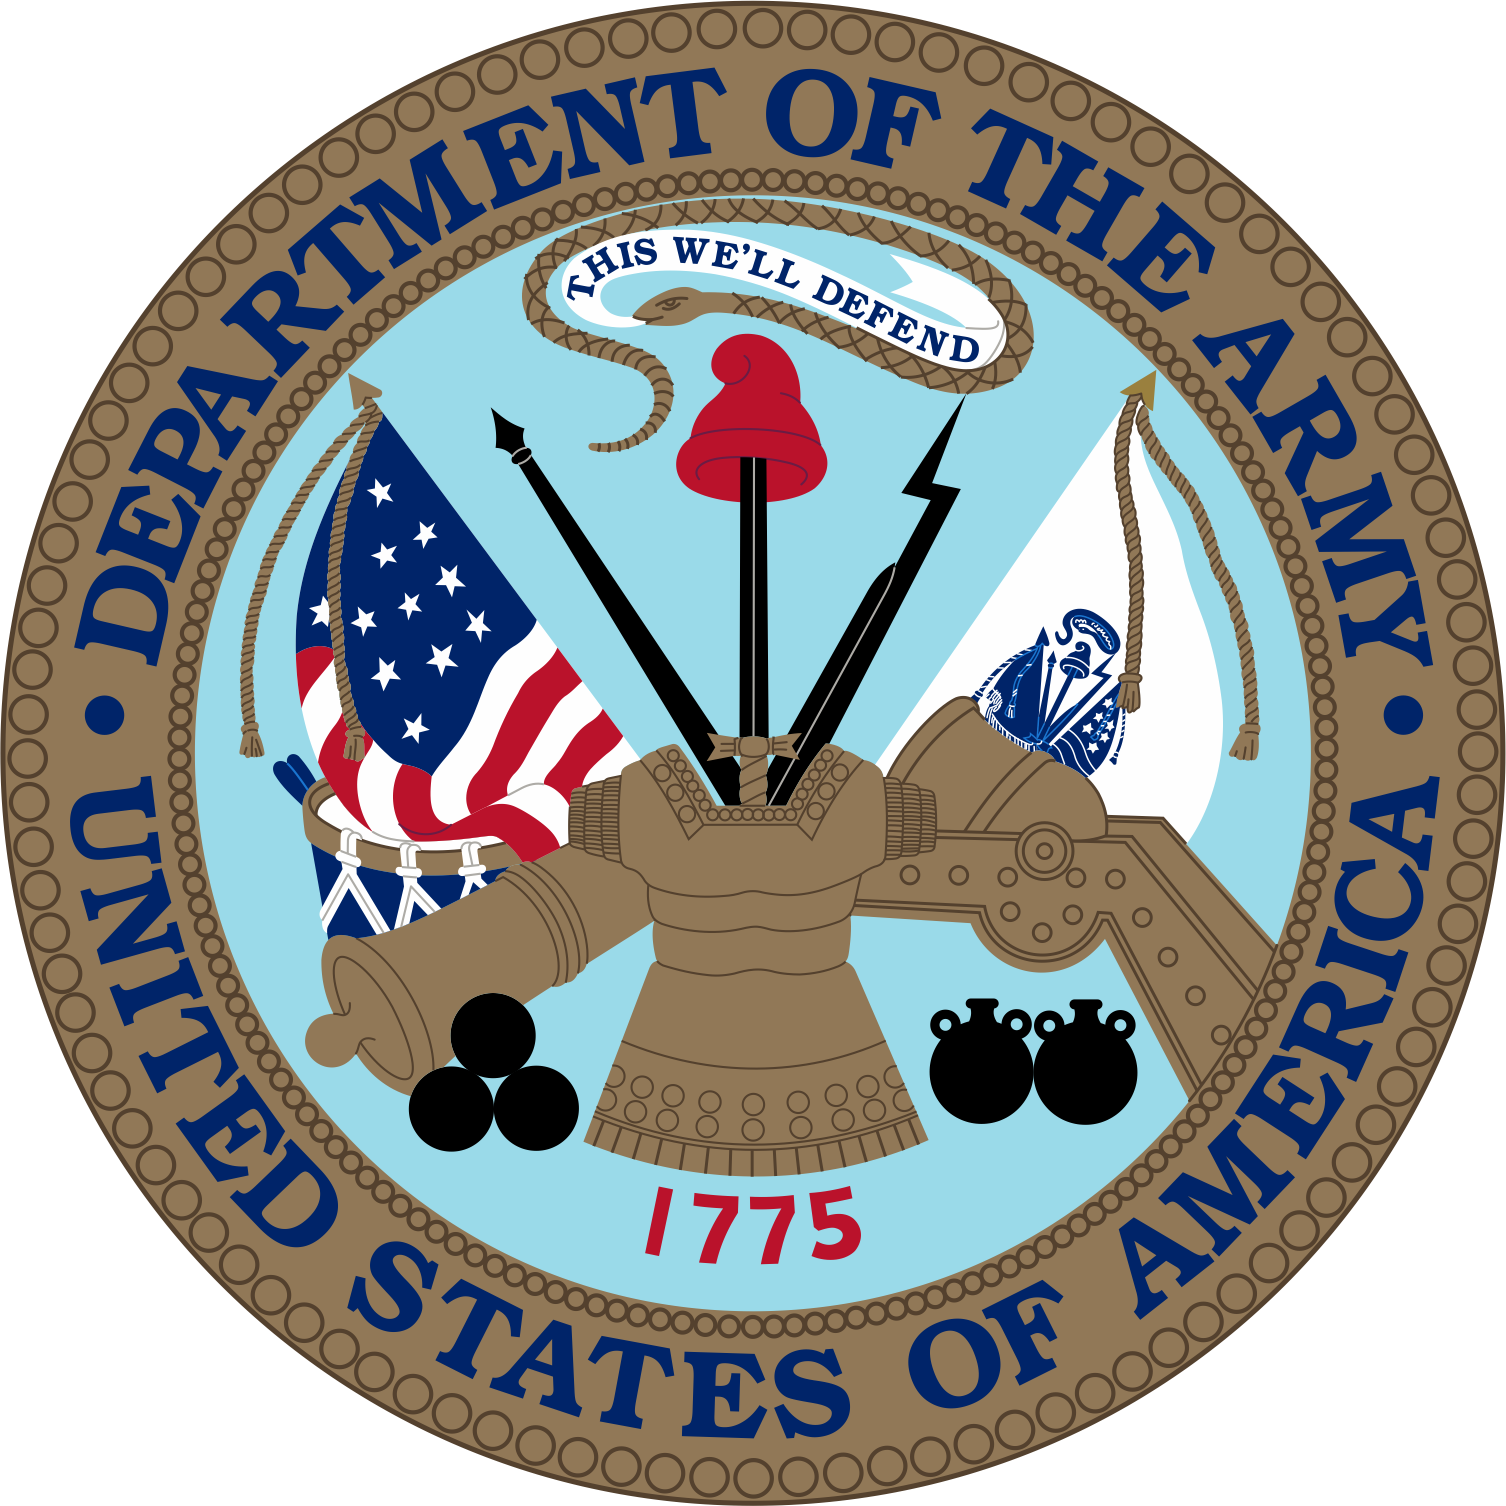 military logo, symbols insignias the united states army #25296